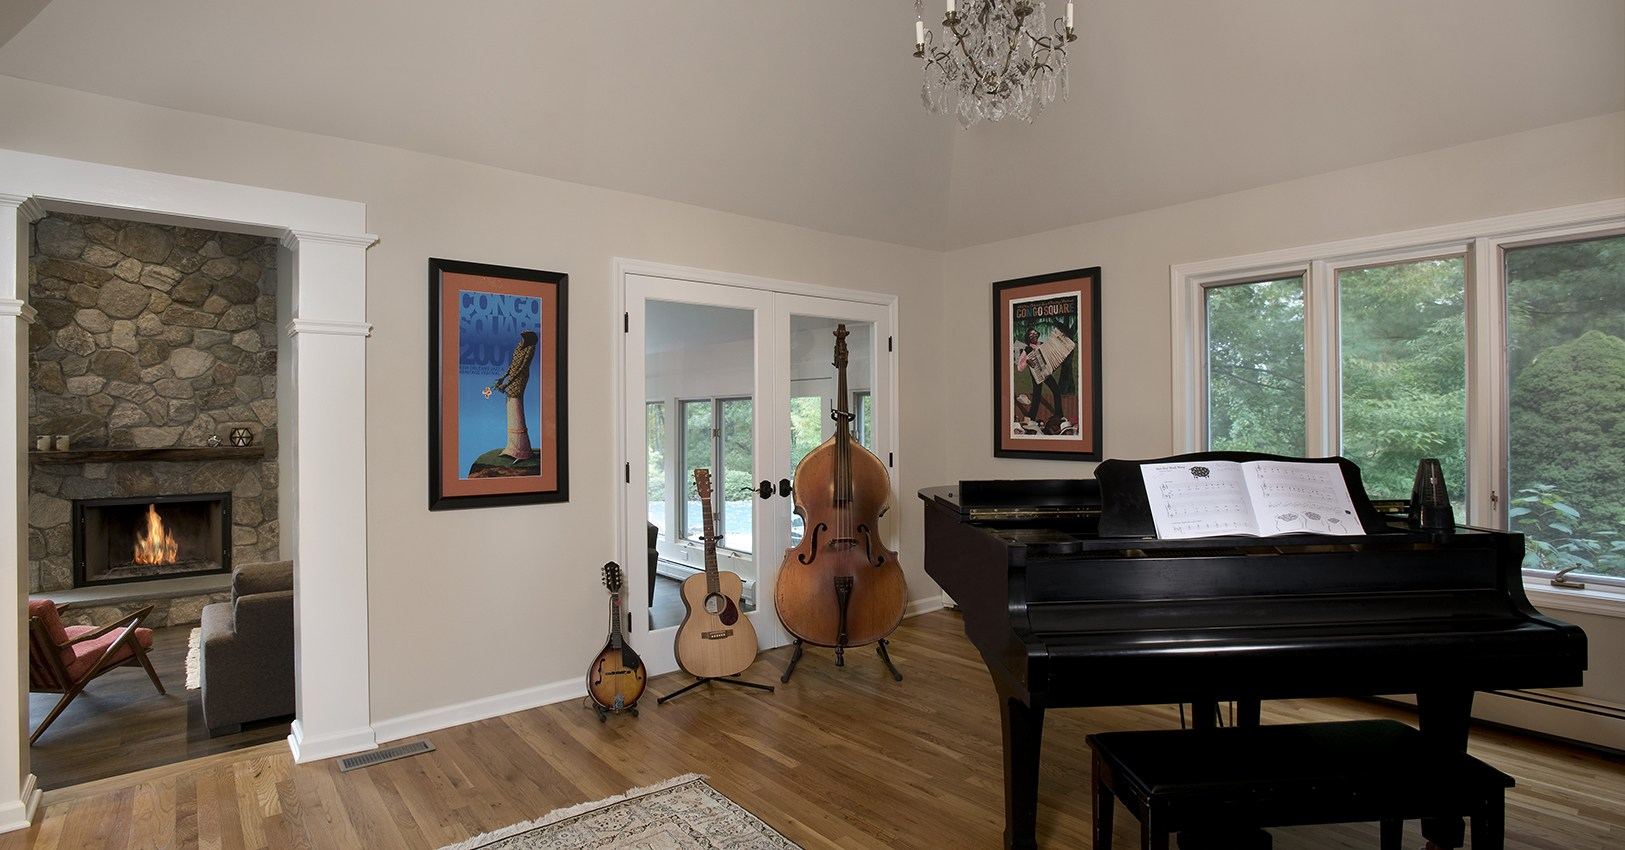 Music room looking towards fireplace